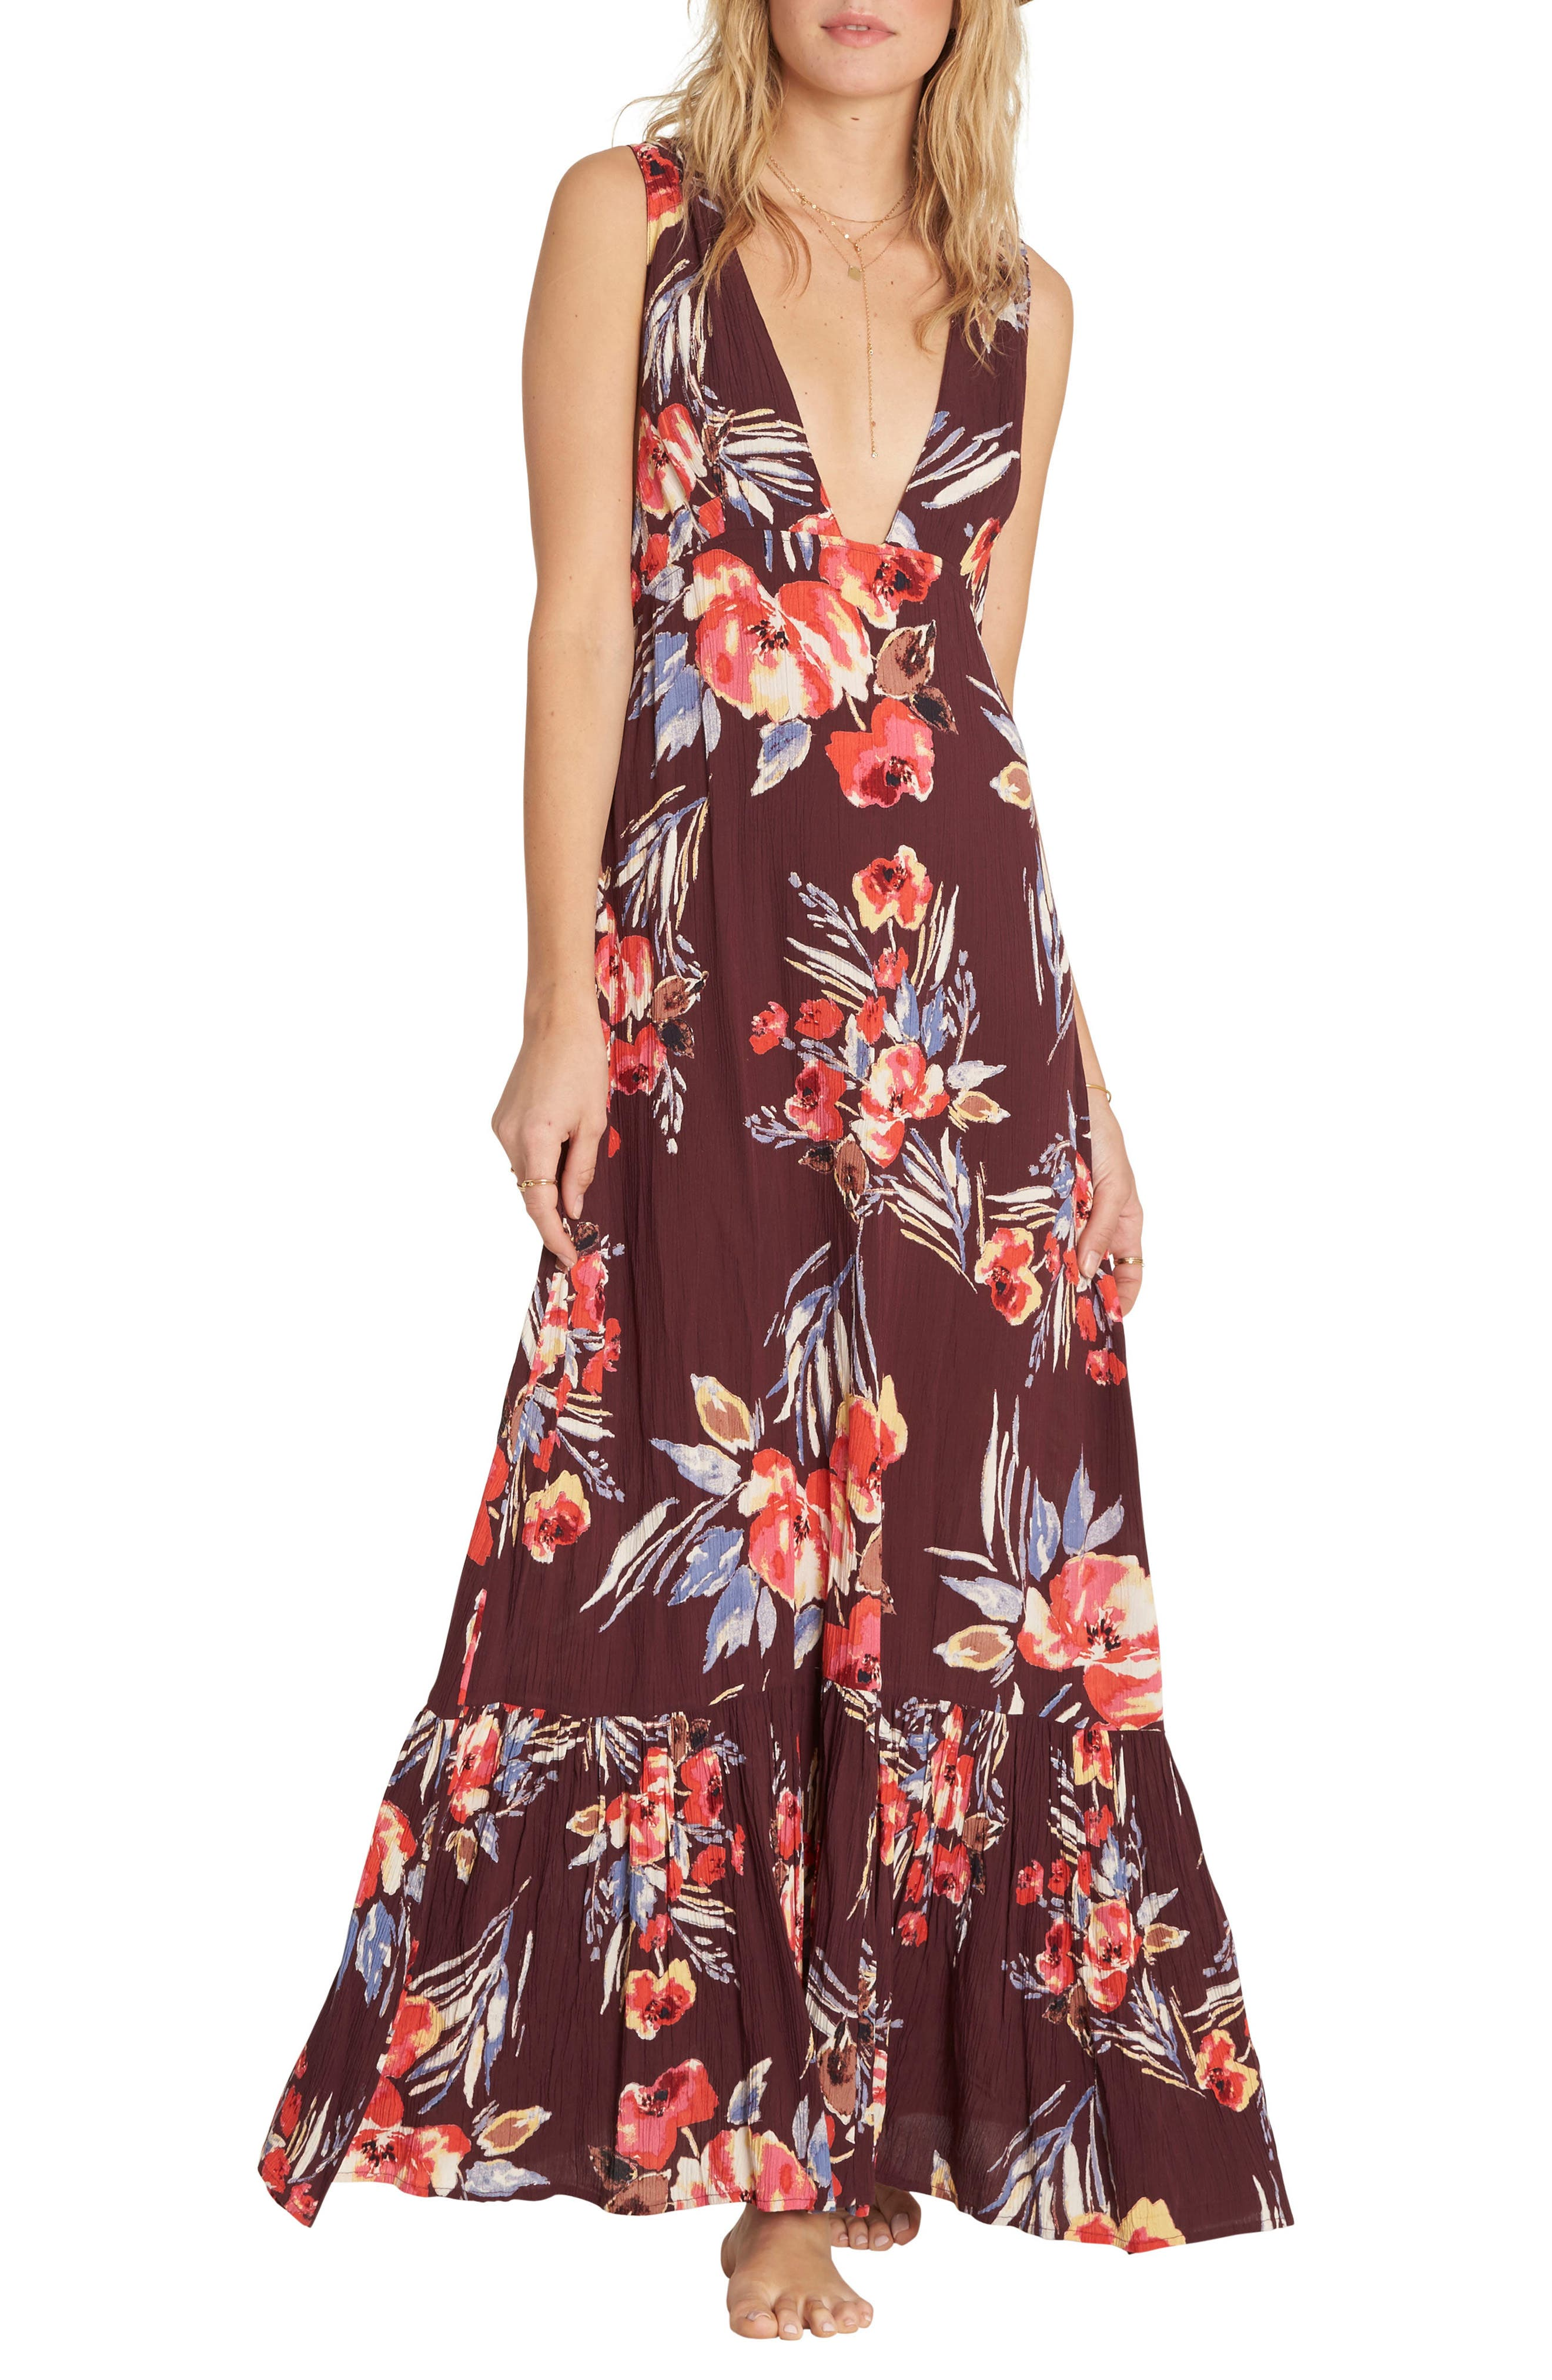 Awoke for Waves Floral Print Maxi Dress,                             Main thumbnail 1, color,                             930